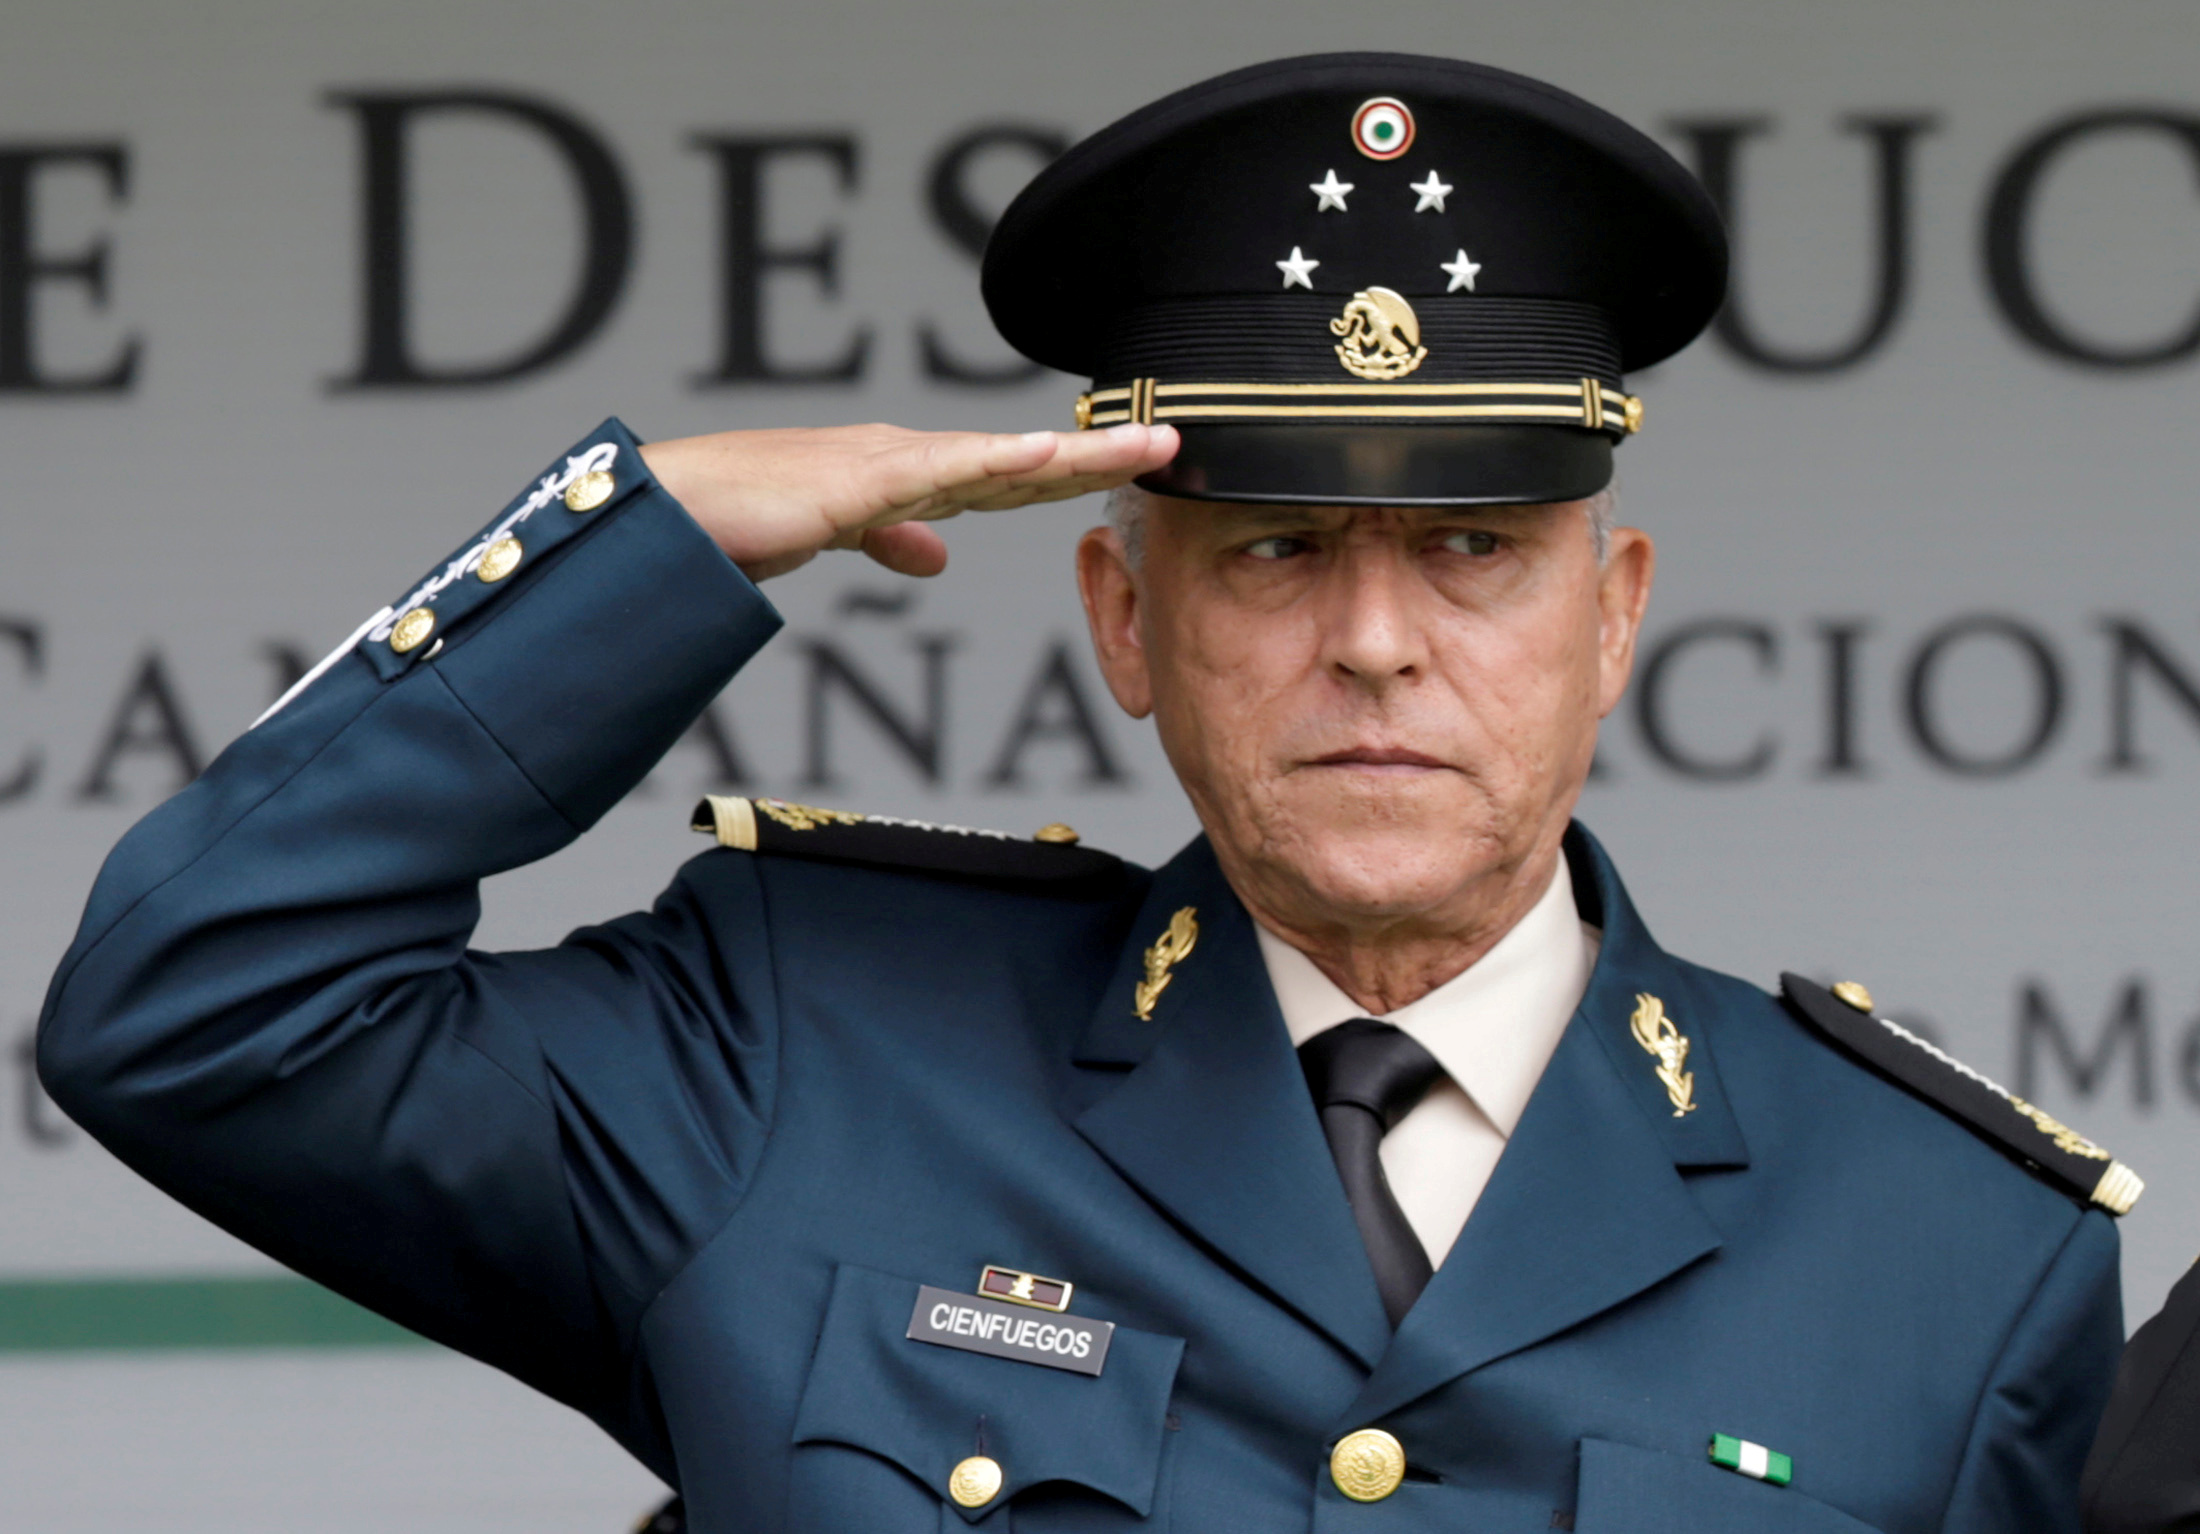 FILE PHOTO: Mexico's defense Minister General Salvador Cienfuegos attends an event at a military zone in Mexico City, Mexico September 2, 2016.  REUTERS/Henry Romero/File Photo/File Photo